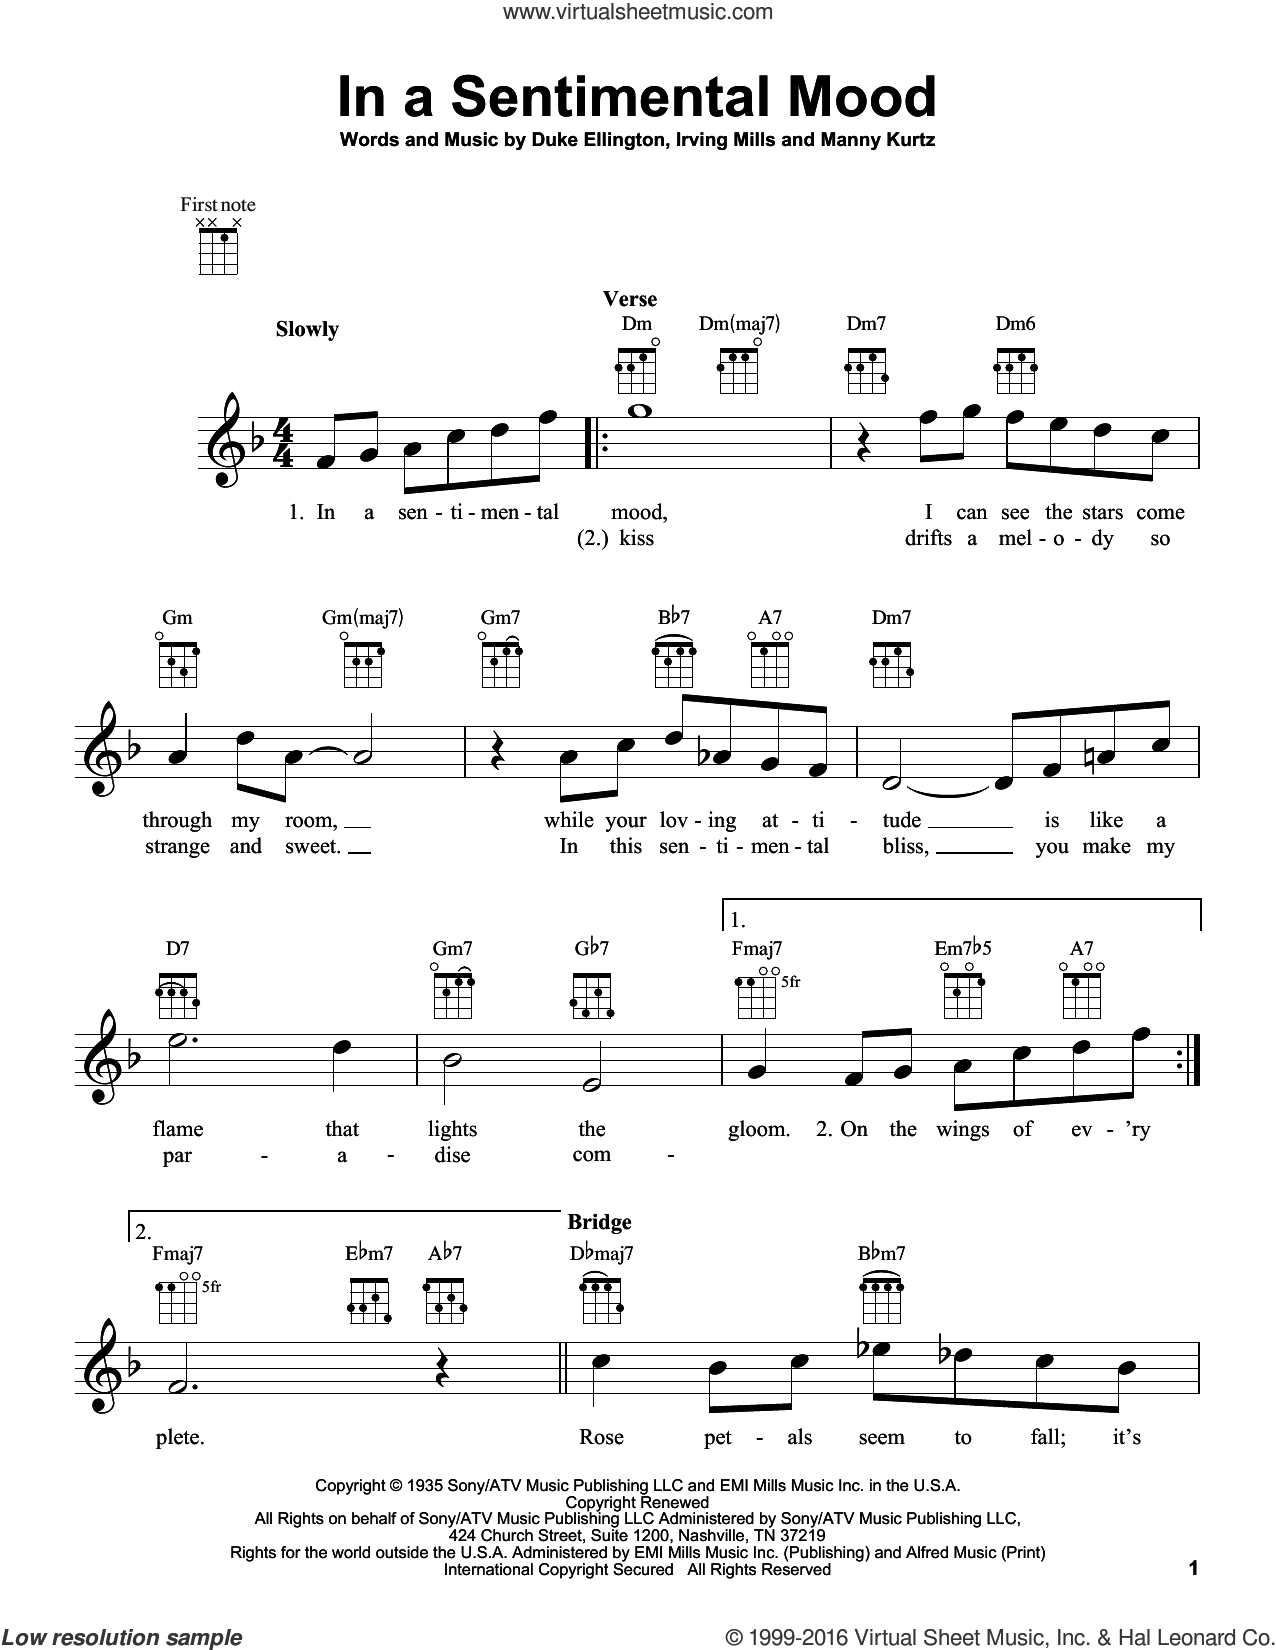 In A Sentimental Mood sheet music for ukulele by Duke Ellington, Irving Mills and Manny Kurtz, intermediate skill level